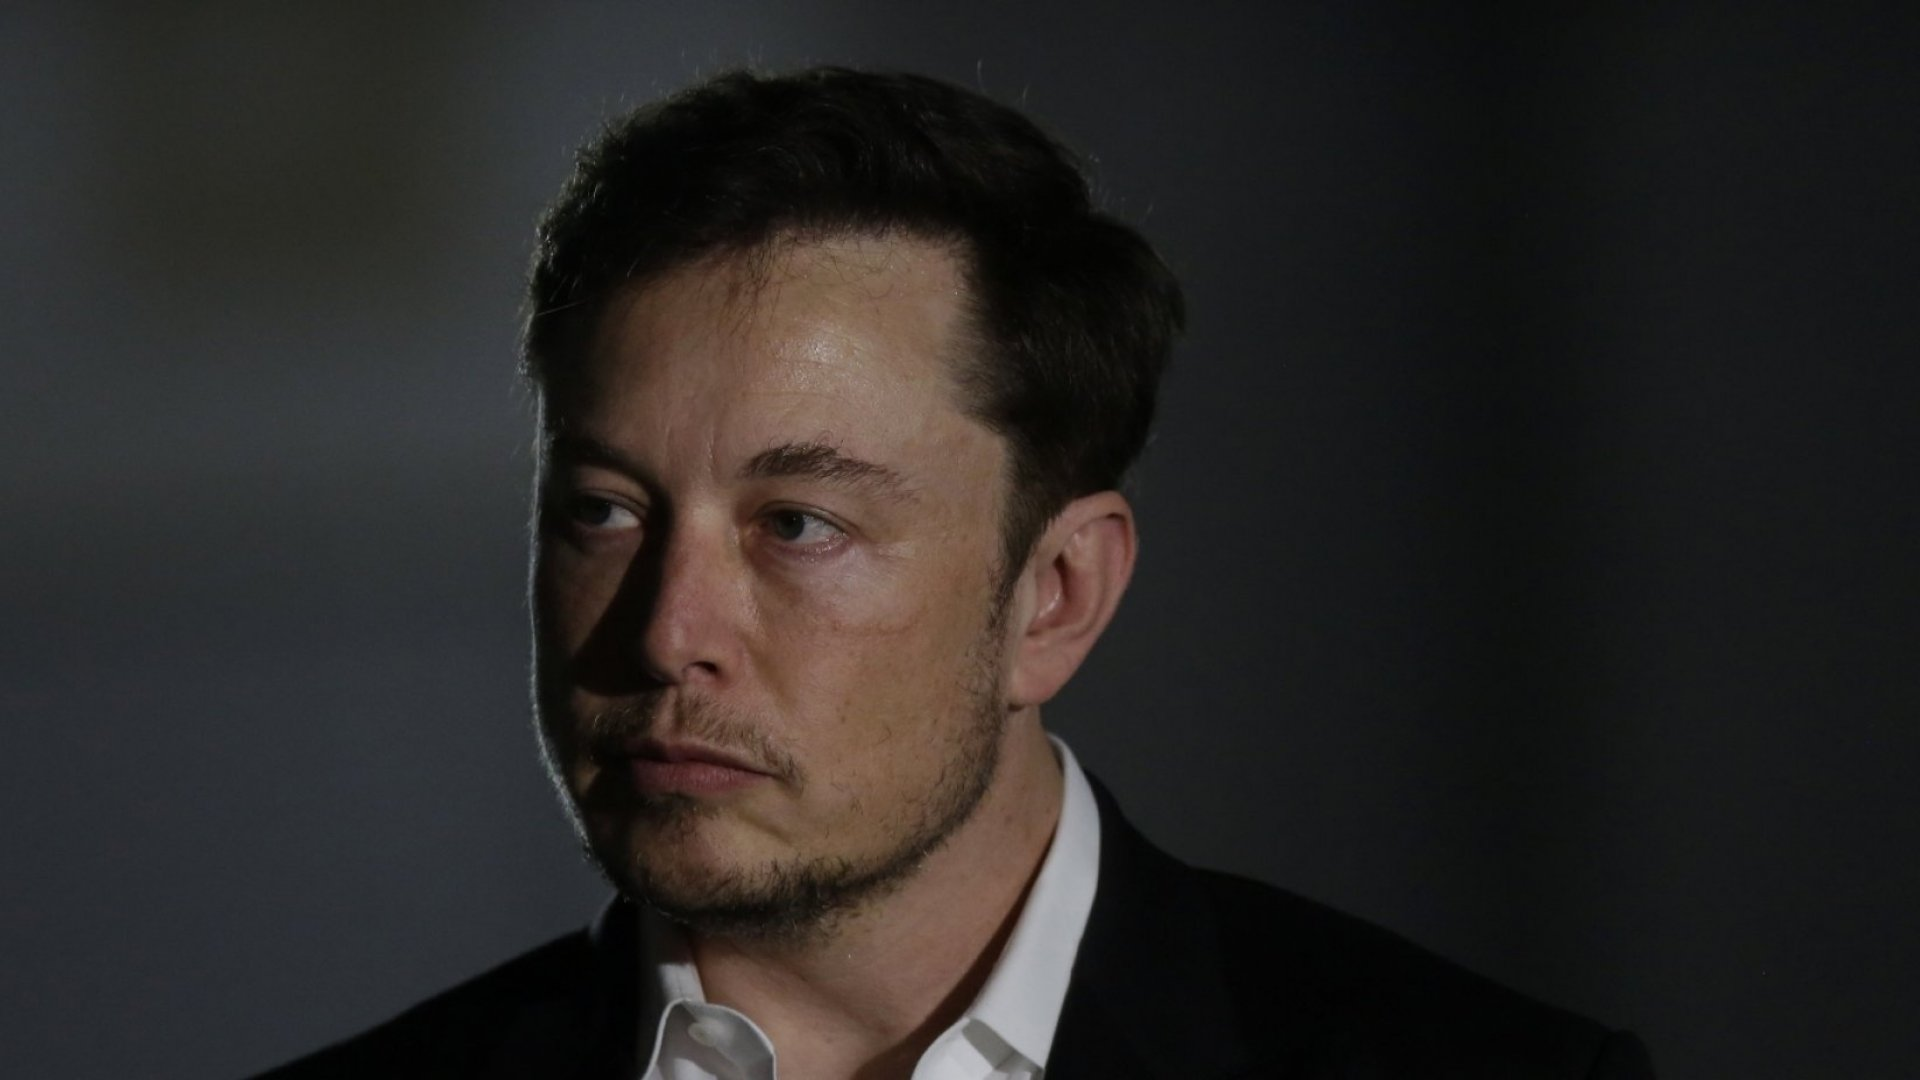 It Took Elon Musk Only 10 Words to Reveal Why You Should Never Want to Work for Tesla